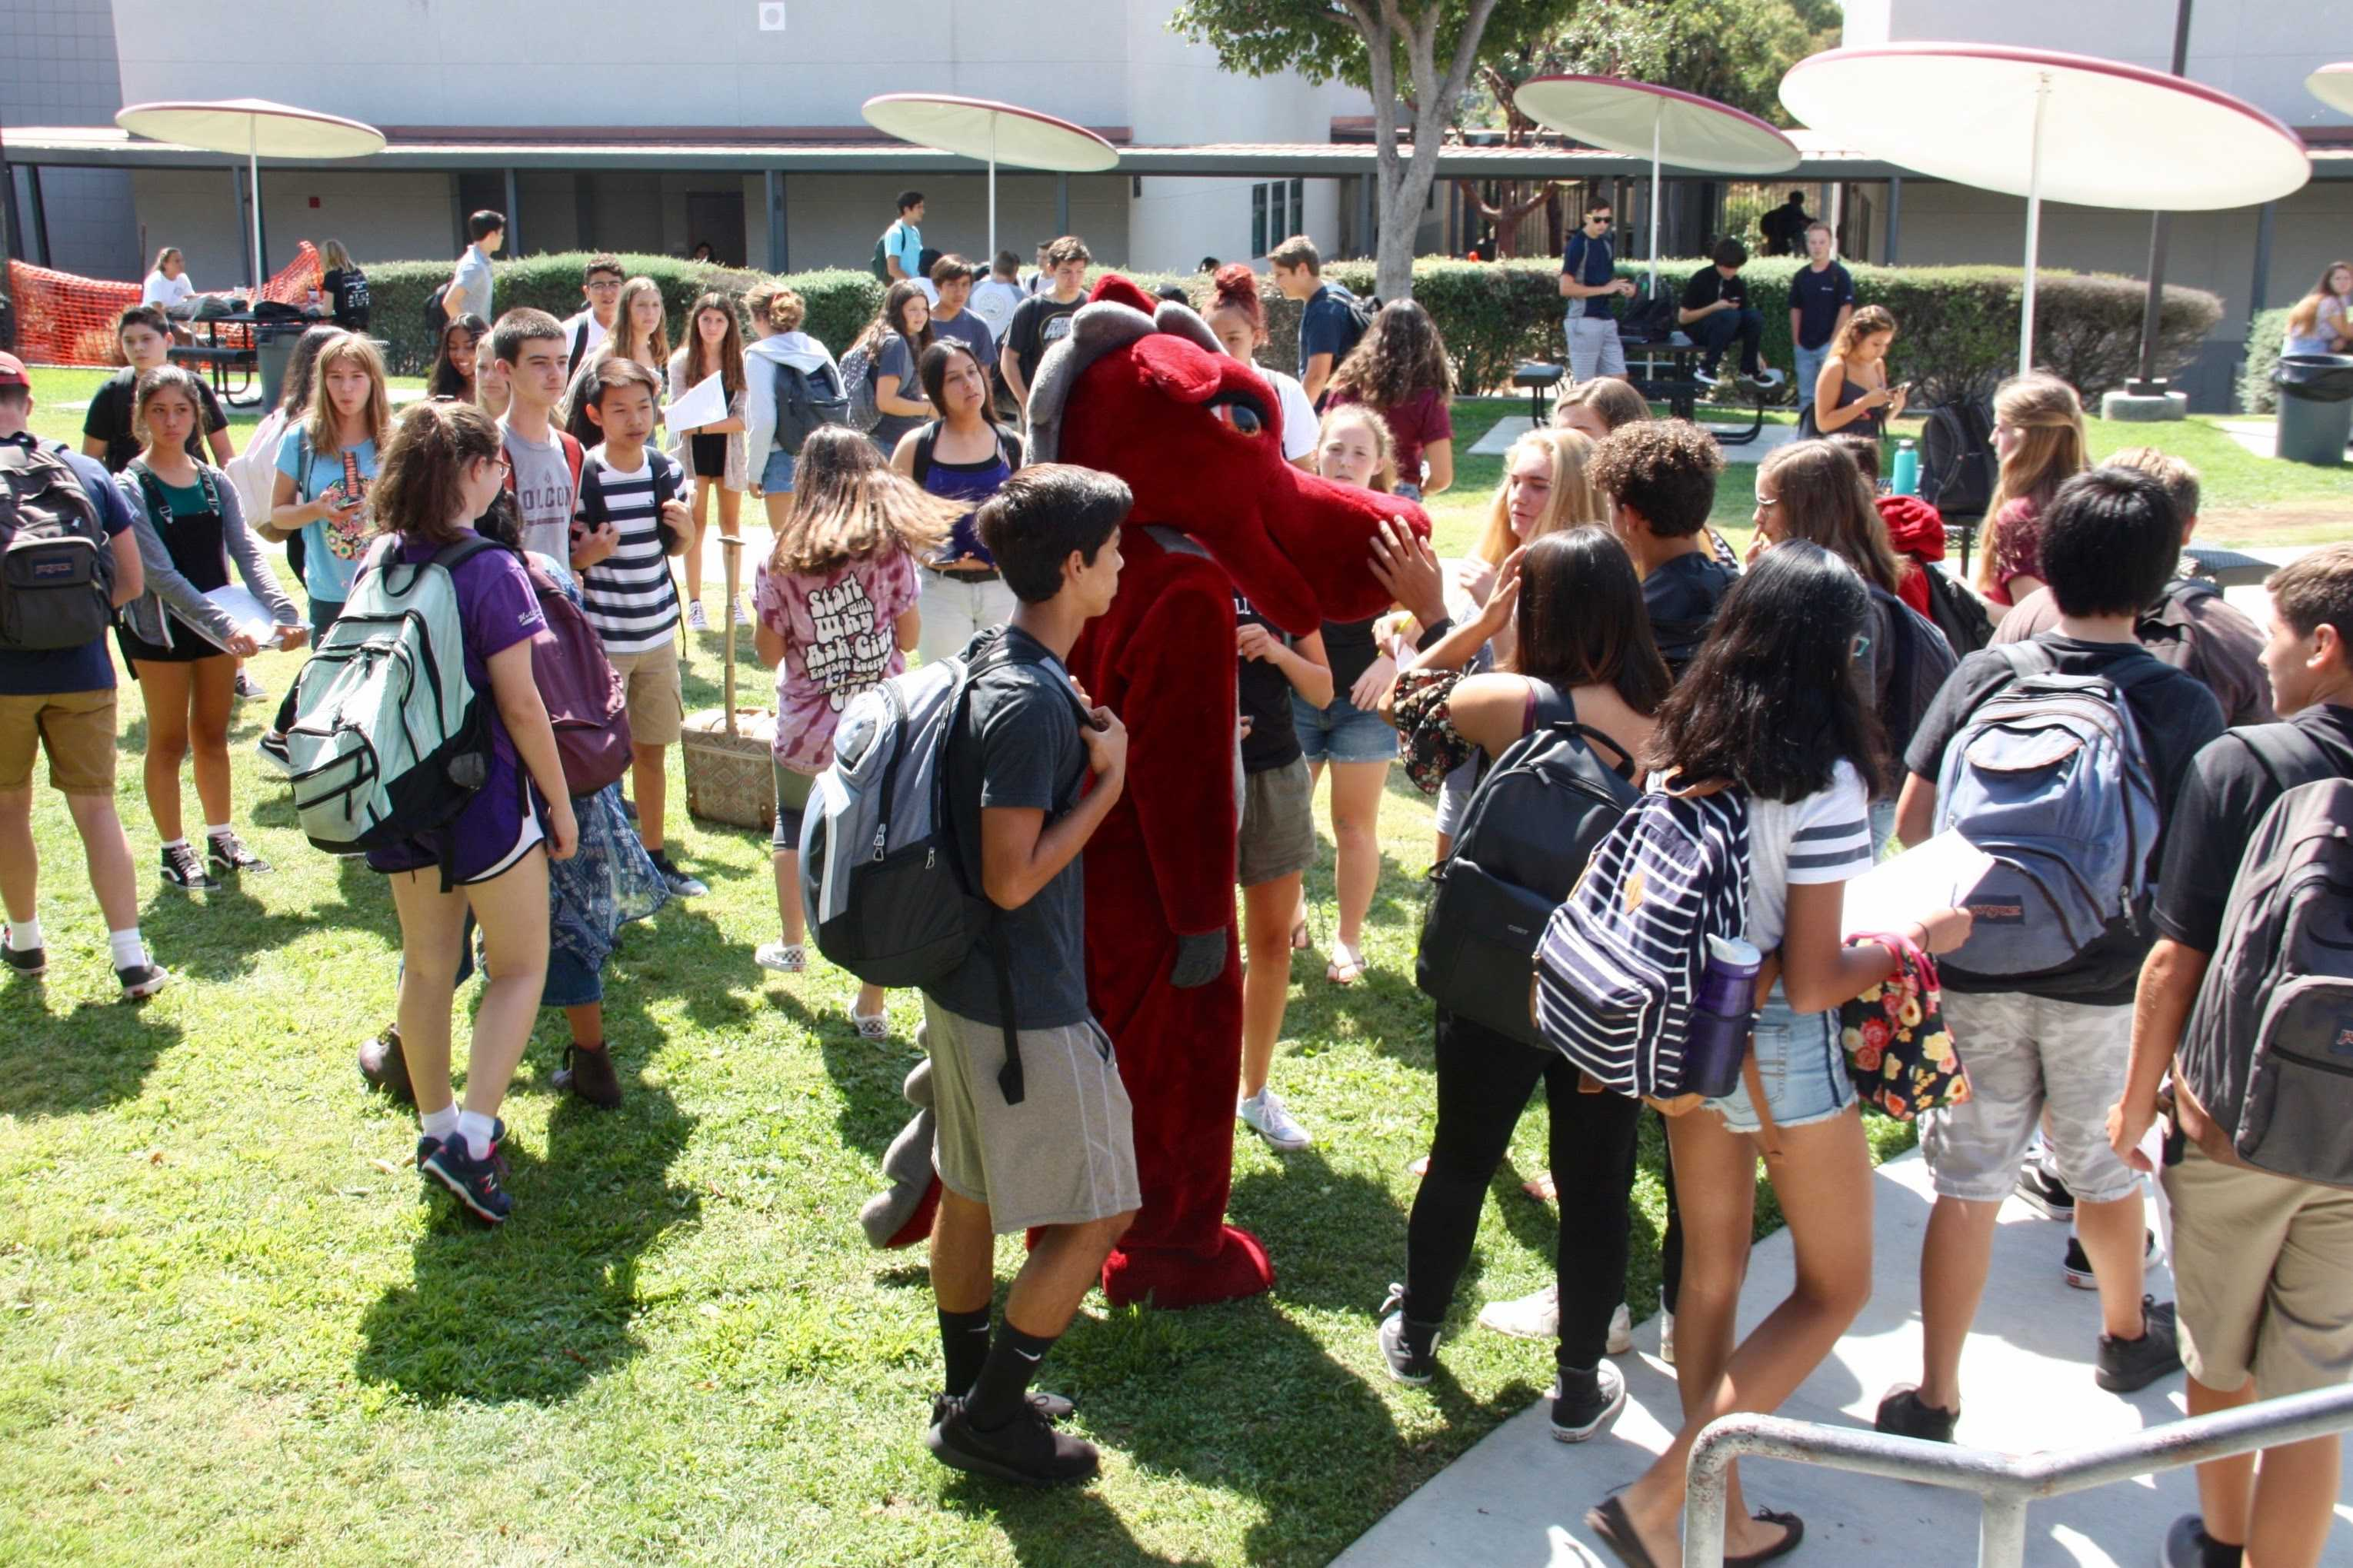 Freshman start strong rally allows students to build relationships and school spirit